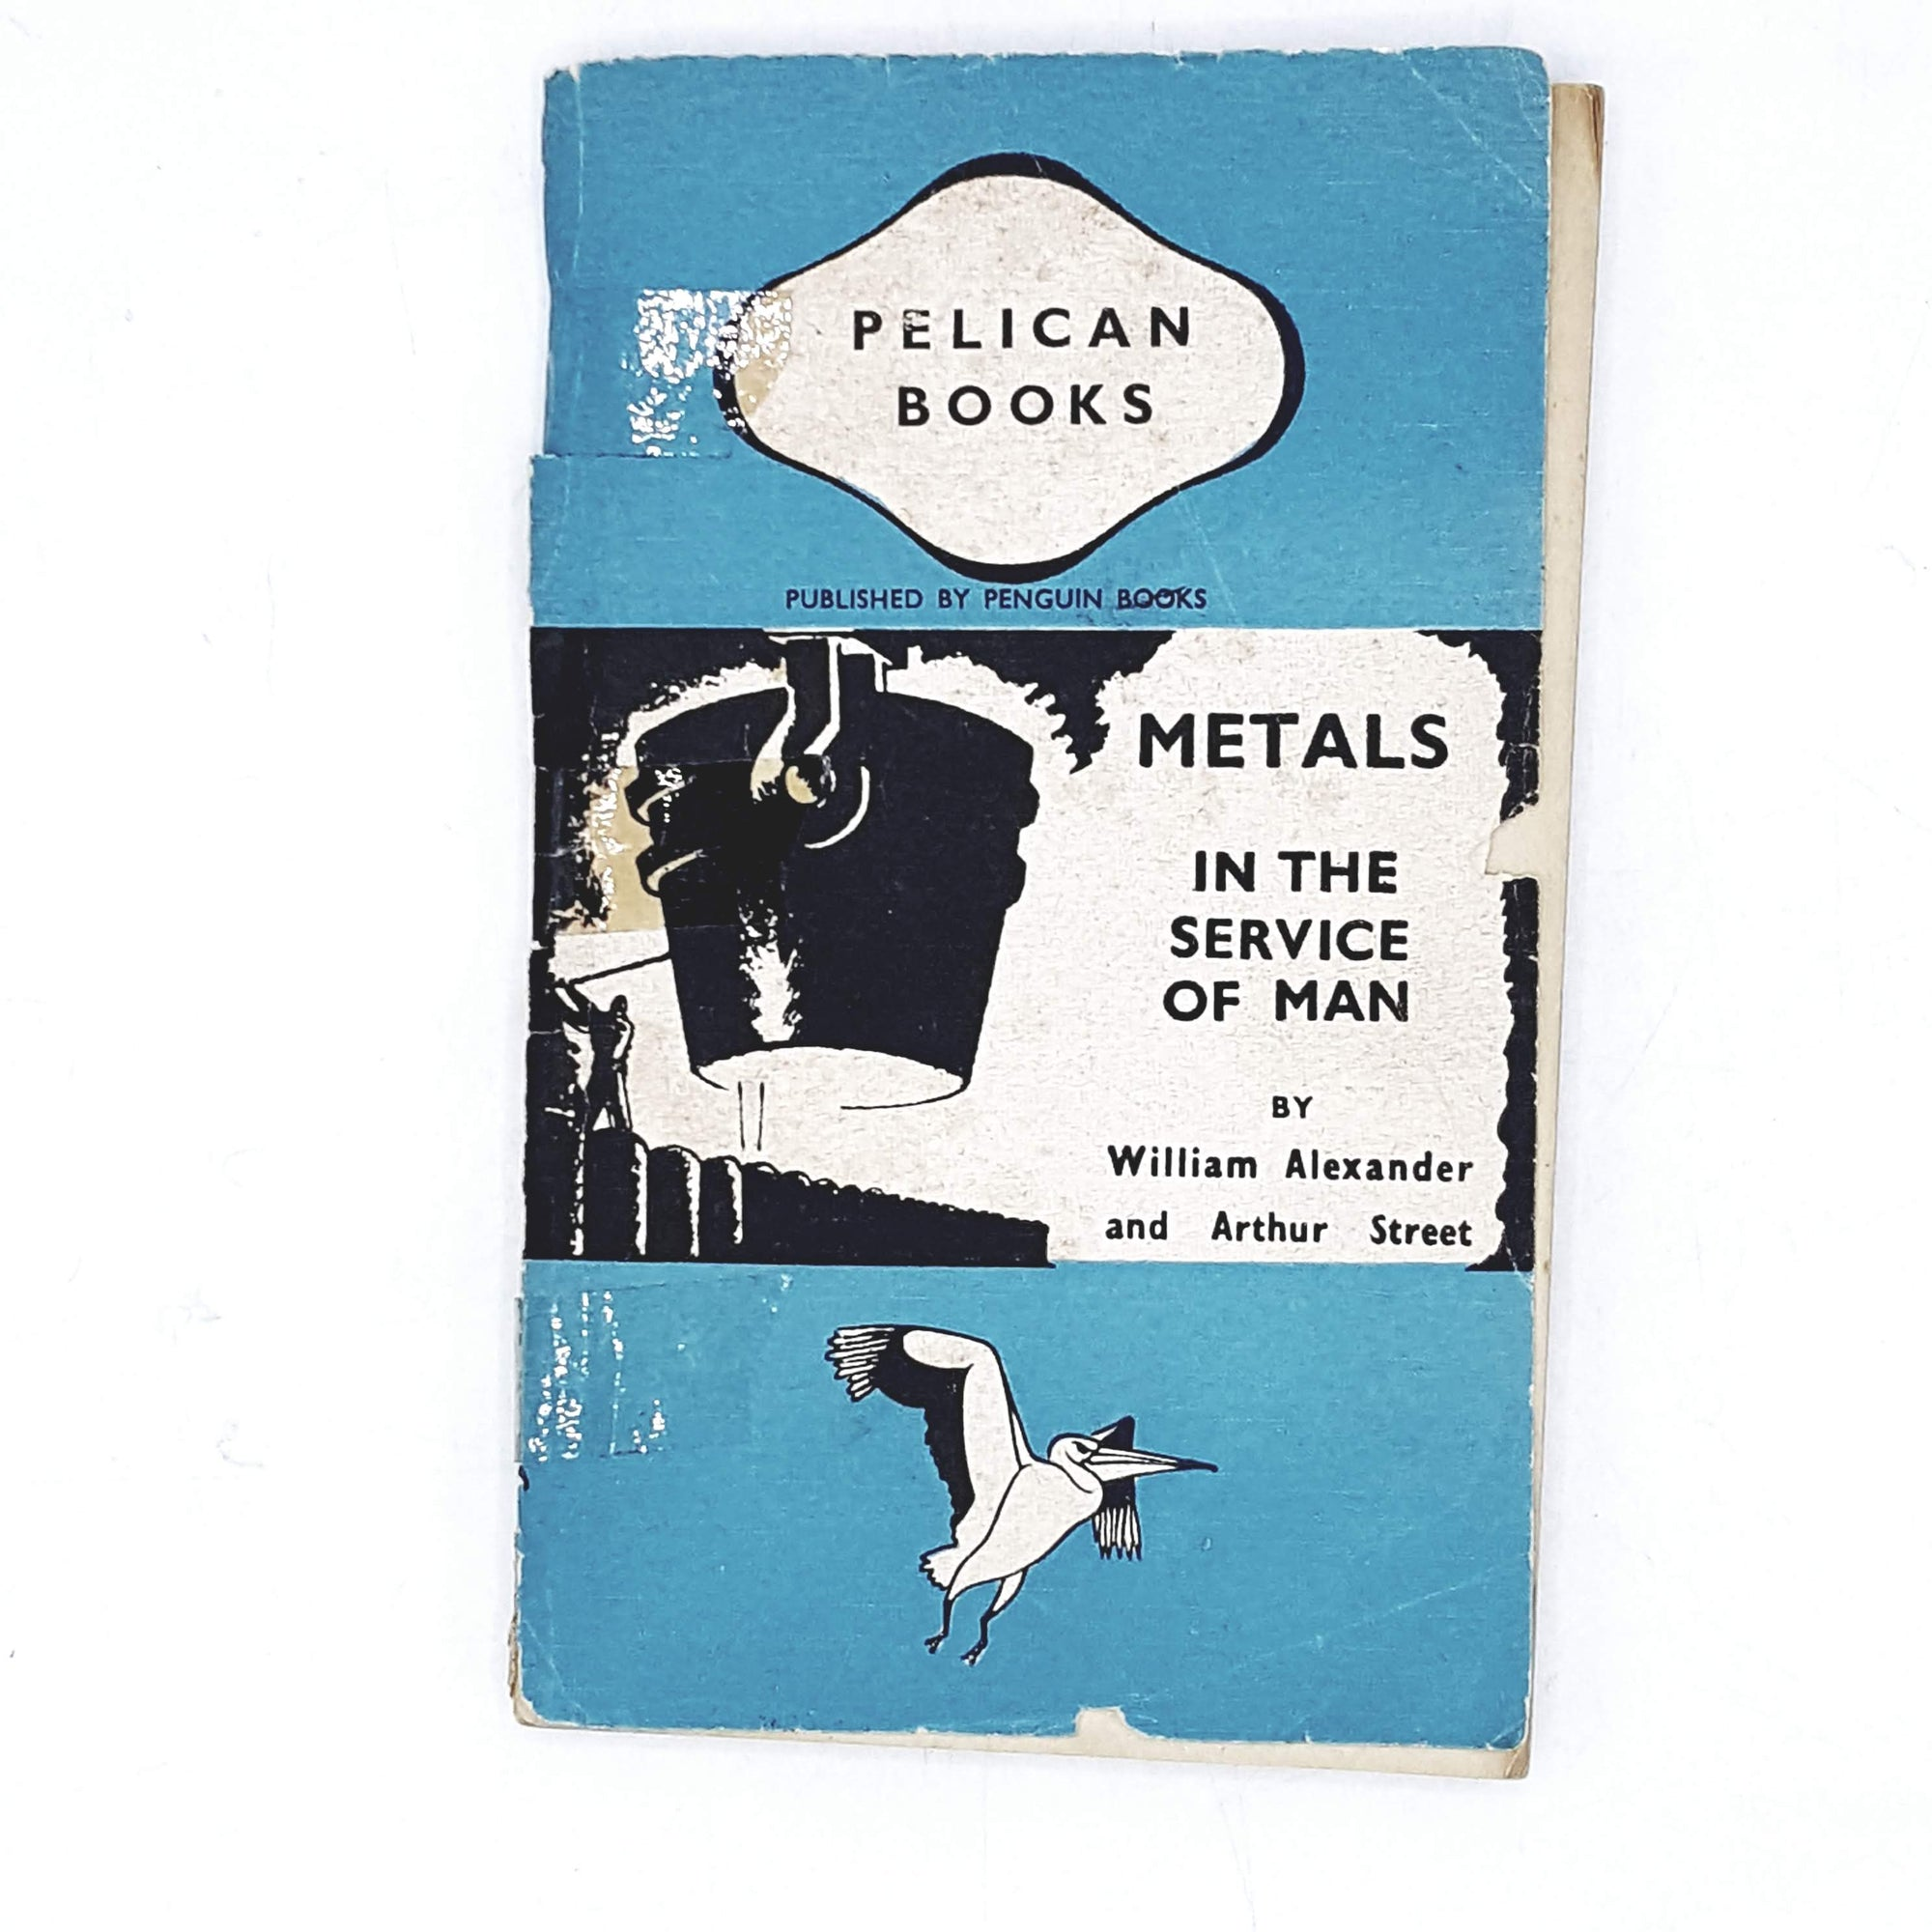 first-edition-pelican-blue-metals-in-the-service-of-man-by-william-alexander-and-arthur-street-1944-country-house-library